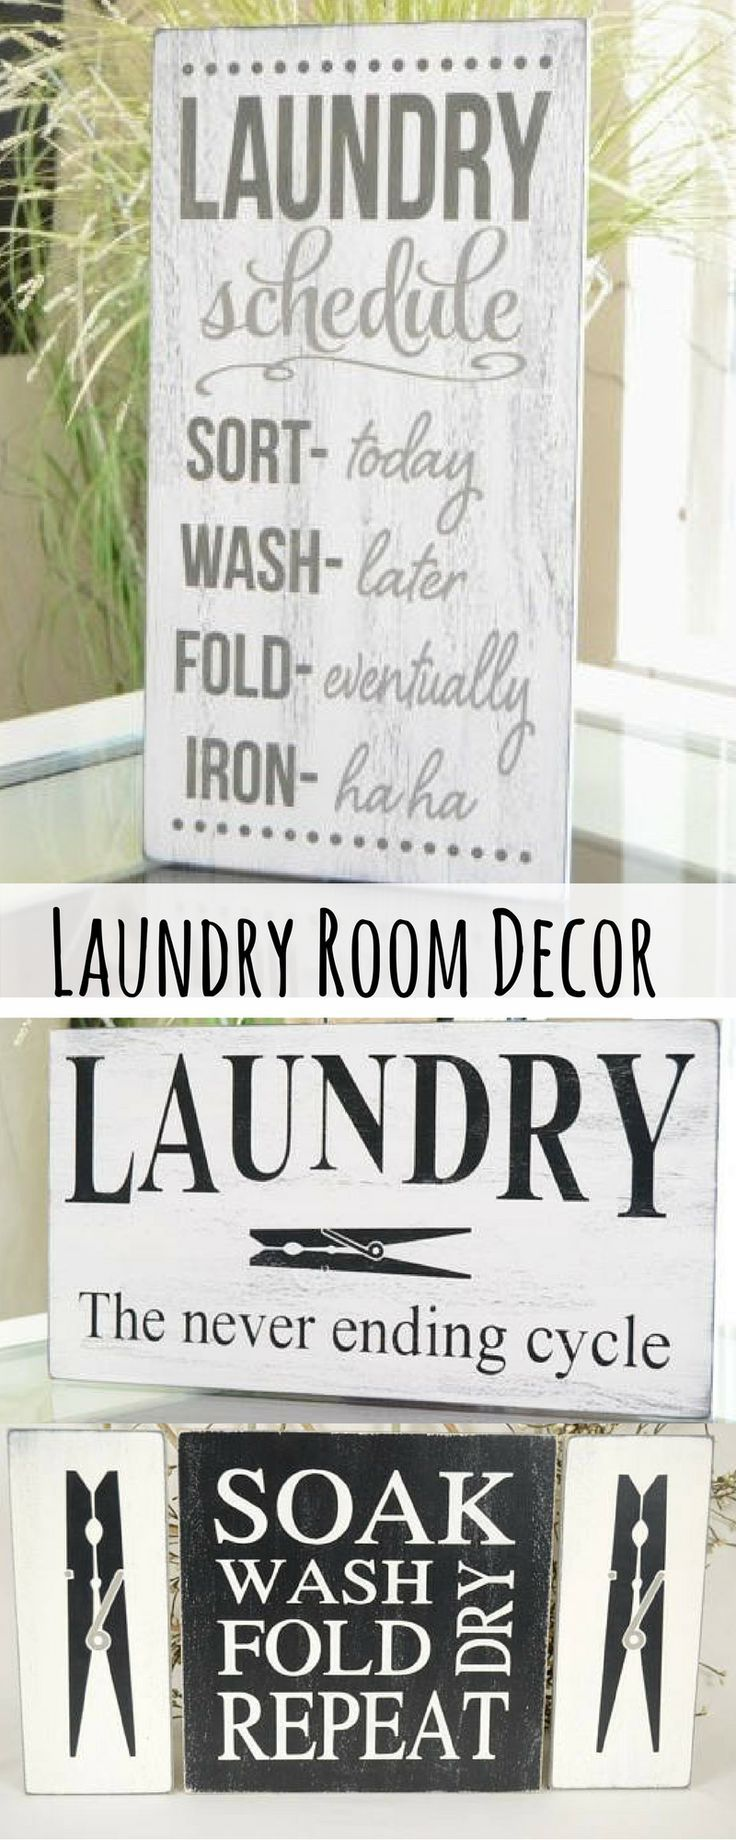 I love these signs for laundry decor. Especially the laundry schedule!! They're rustic and charming. It's a room I spend 90% of my life in, it should be decorated! #commissionlink #rustic #laundry #laundryroom #homedecor #home